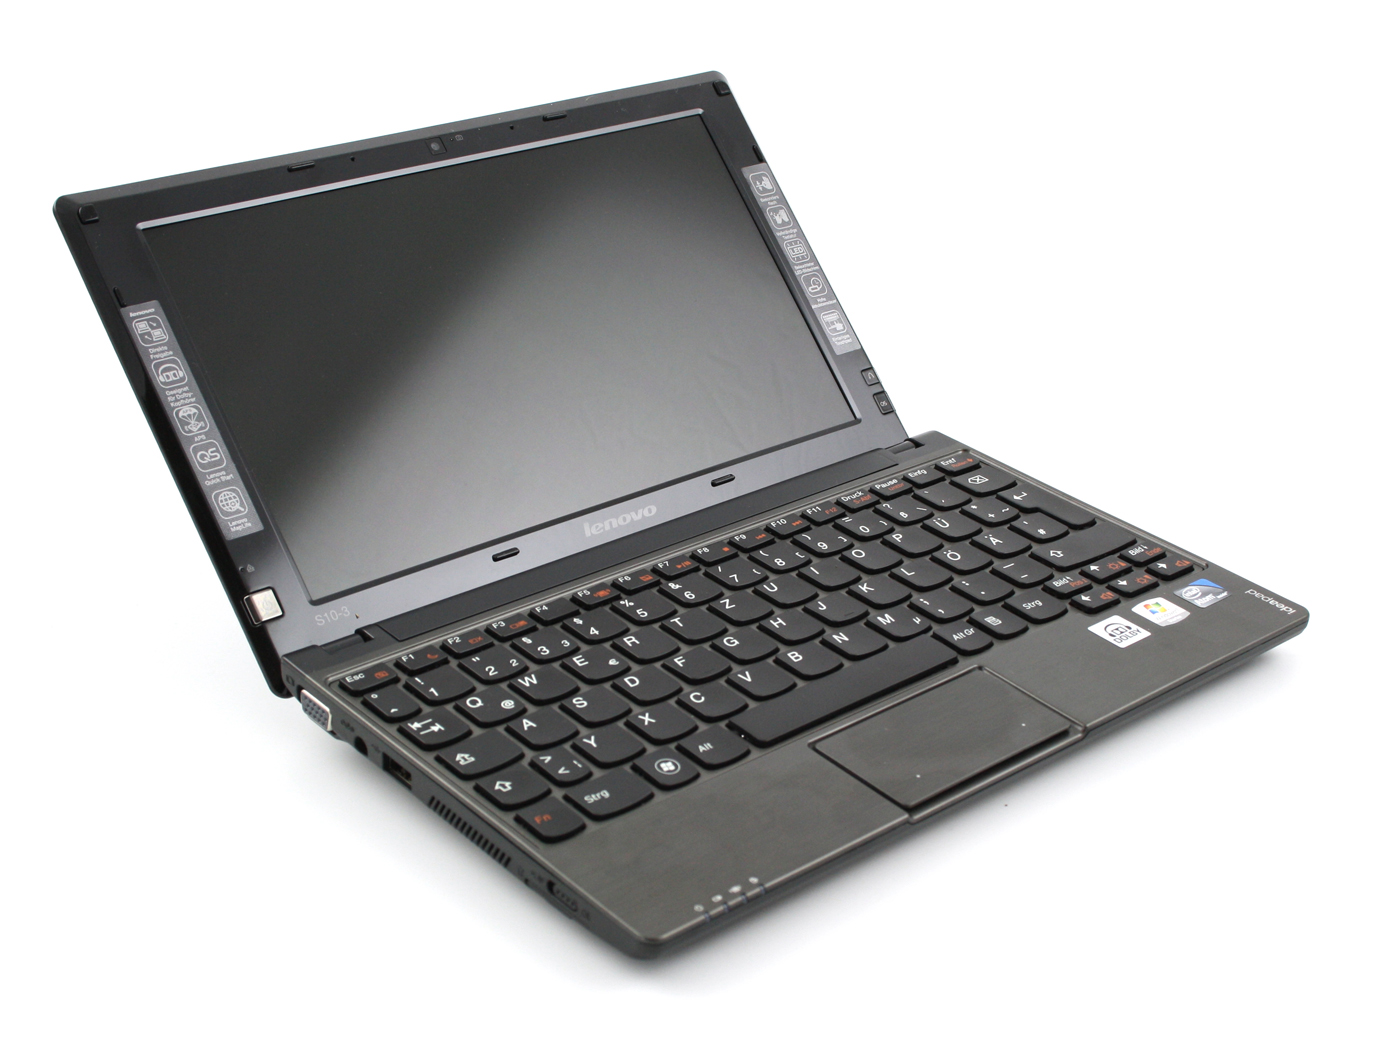 LENOVO IDEAPAD S10 DRIVER FOR MAC